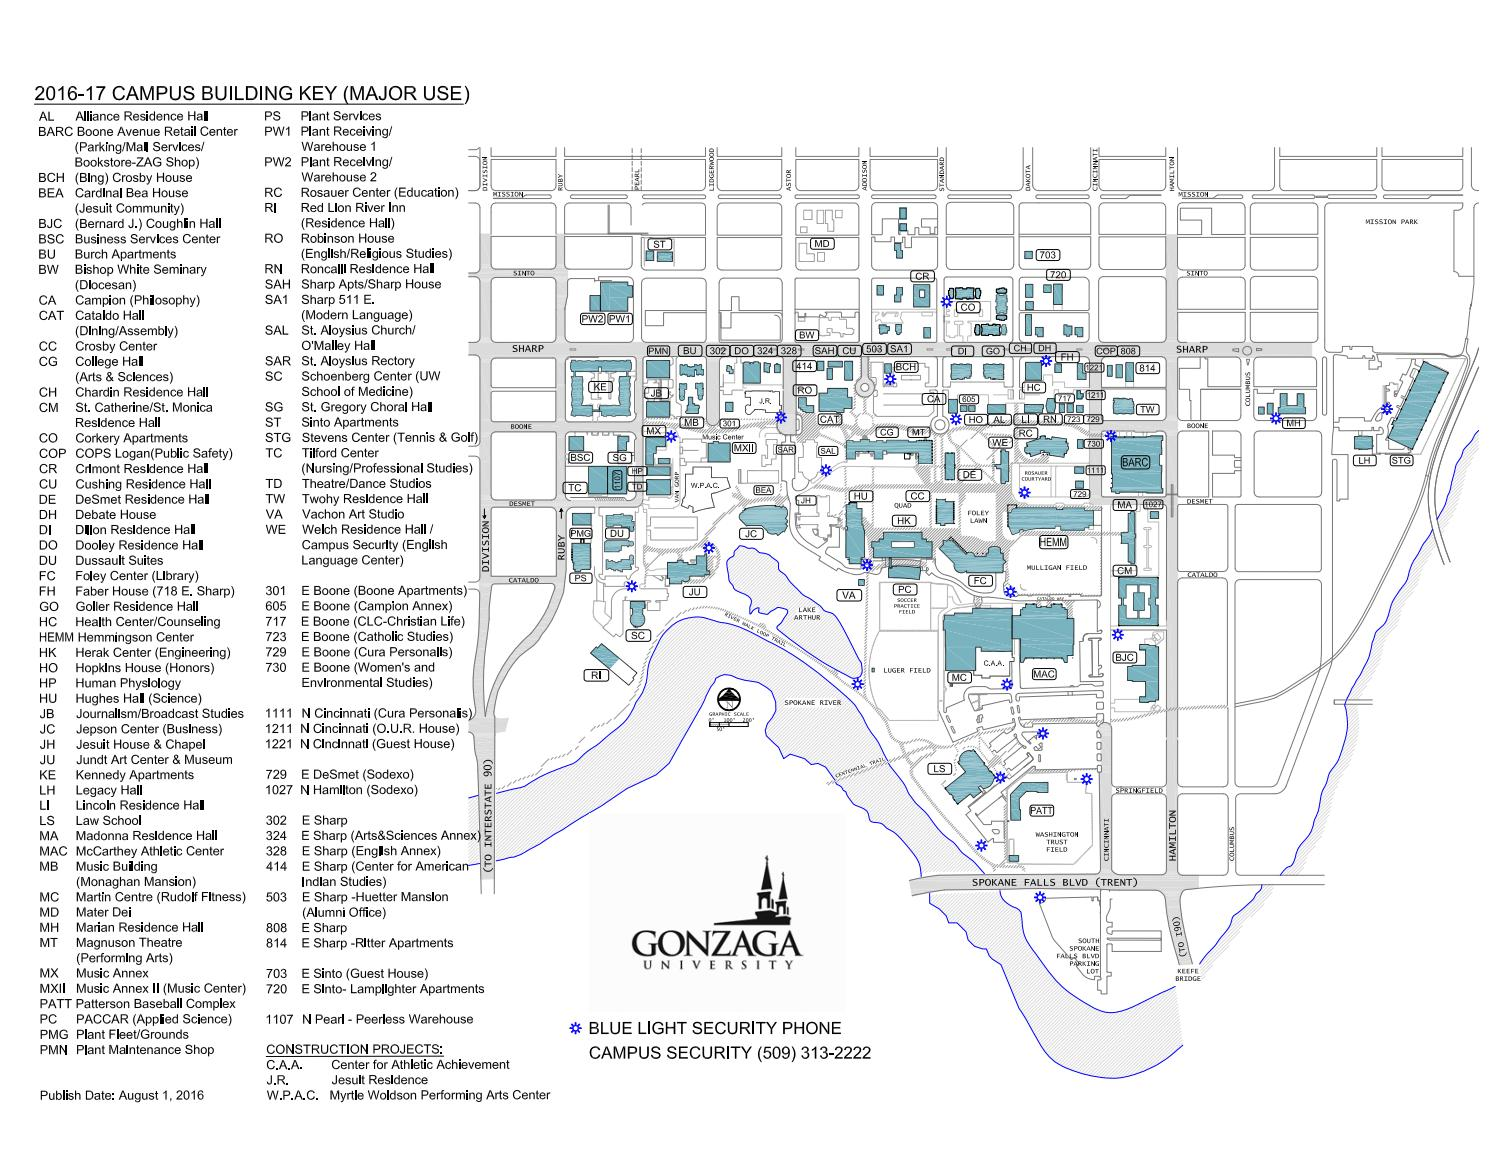 Blue Light Security Campus Map by Gonzaga University - issuu on gonzaga university, washington state colleges and universities map, gonzaga baseball, eastern washington state map, gonzaga logo, reed college oregon map, gonzaga basketball players, saddleback college map, gonzaga wallpaper, mercer county nj map, big bend map, wsu riverpoint map, new york city bus map, gonzaga basketball court, fairfield university ct map, gonzaga bulldog statue, wsu parking map, san antonio college map,